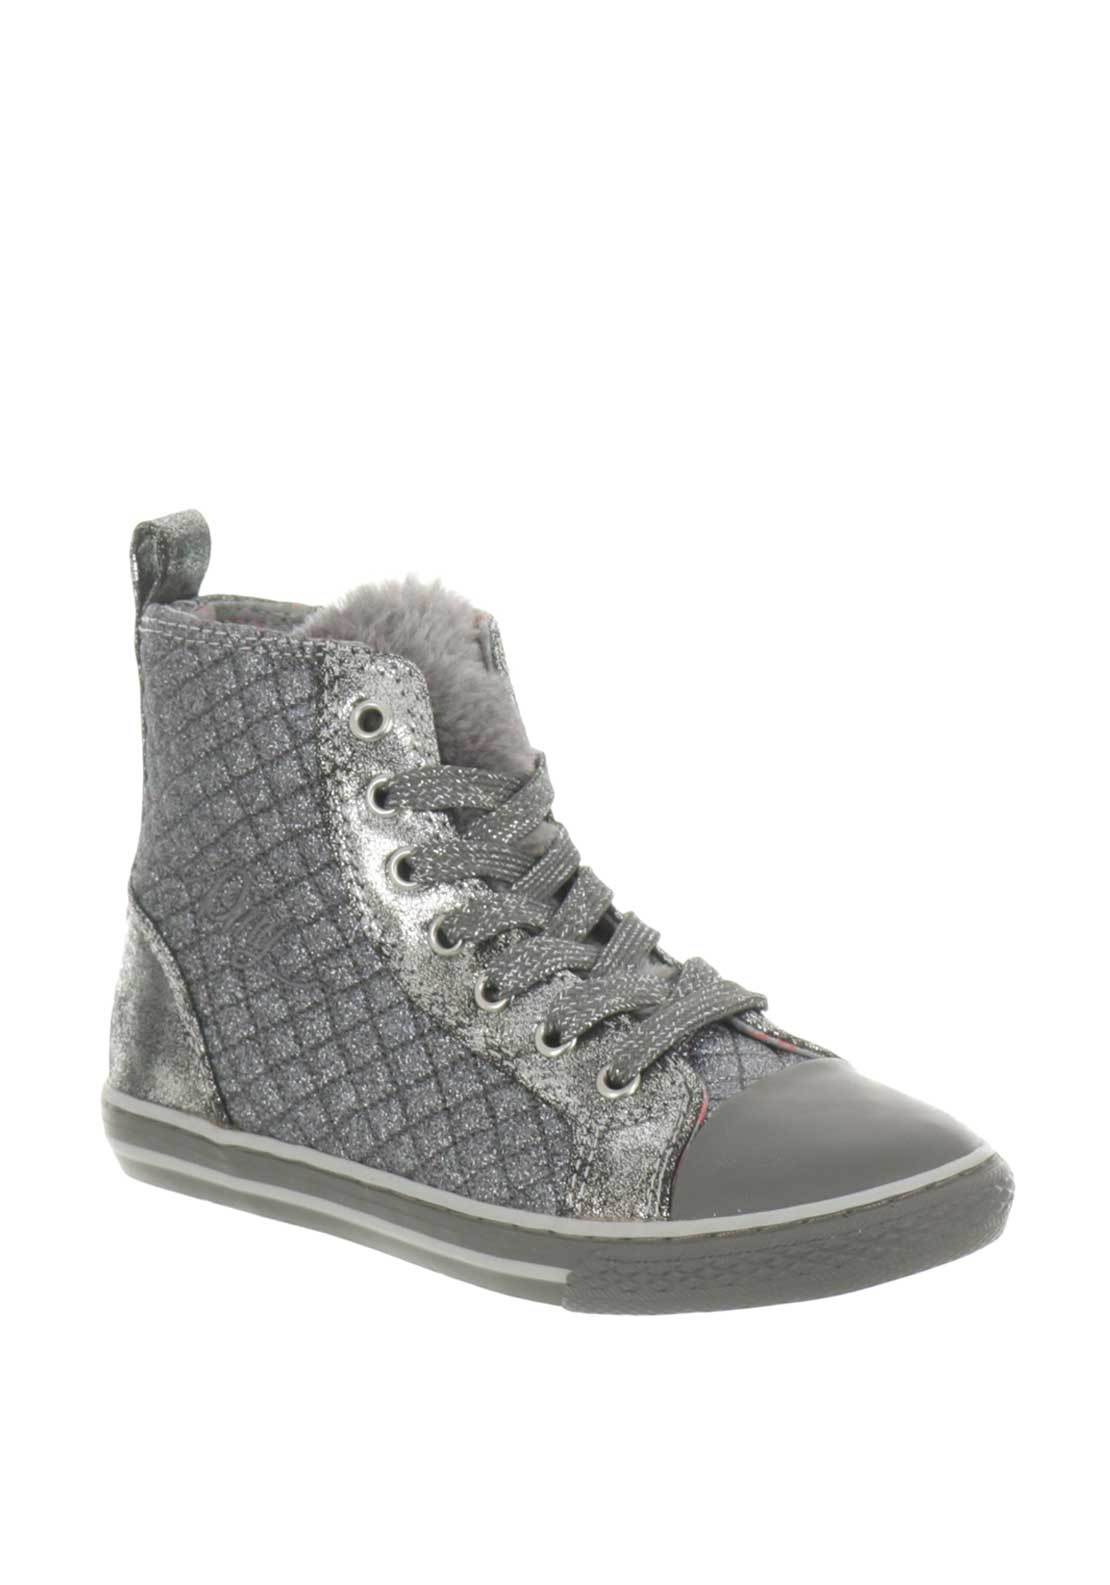 e7cb234dd2fb Primigi Girls Glitter Quilted Hi Top Trainers, Silver. Be the first to  review this product